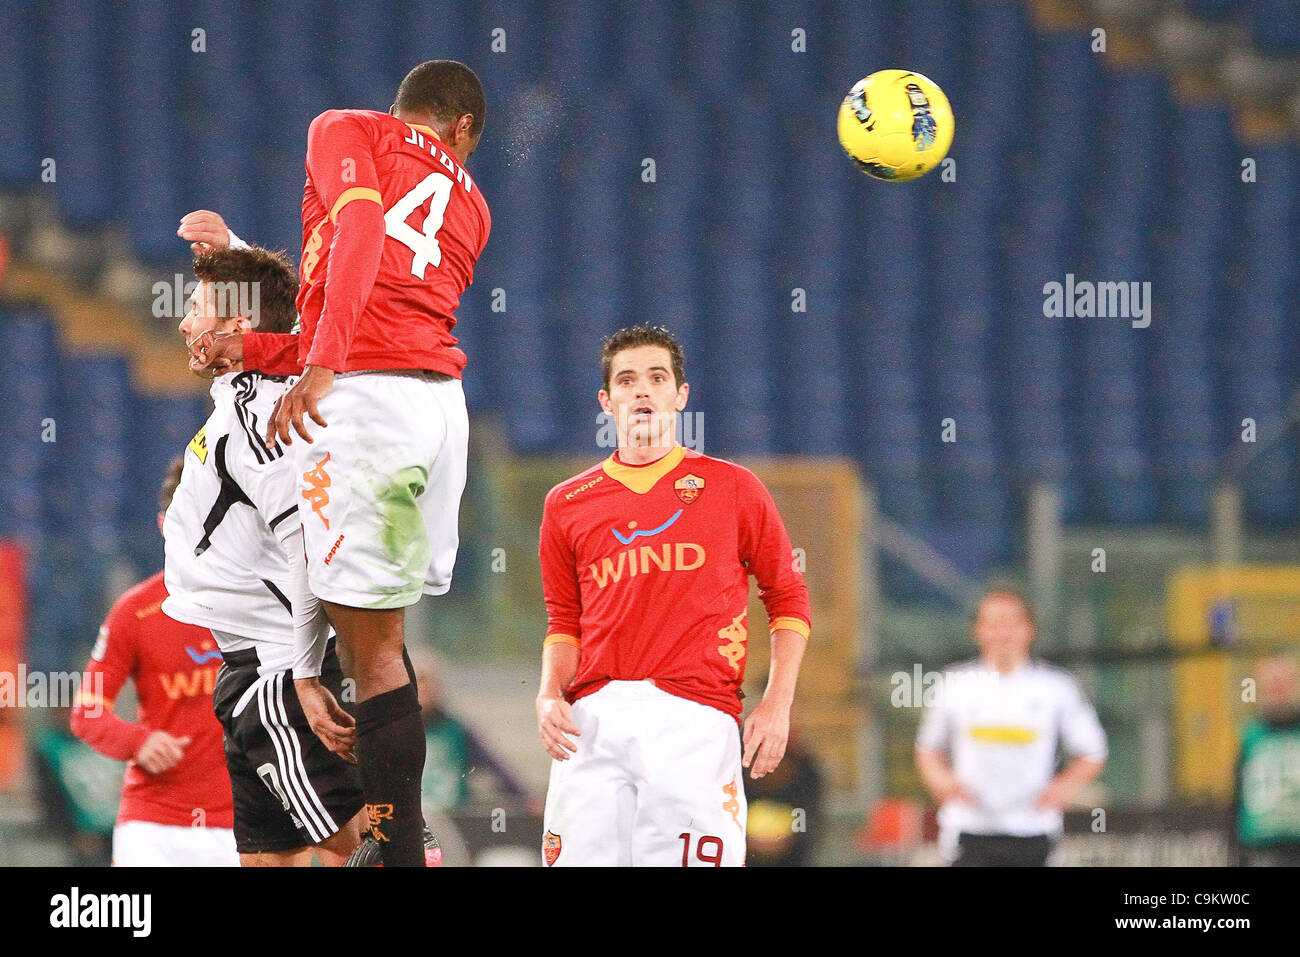 01.10.2011, Rome, Italy.   Juan In action during the Serie A match between AS Roma vs Cesena, played in the Stadio - Stock Image